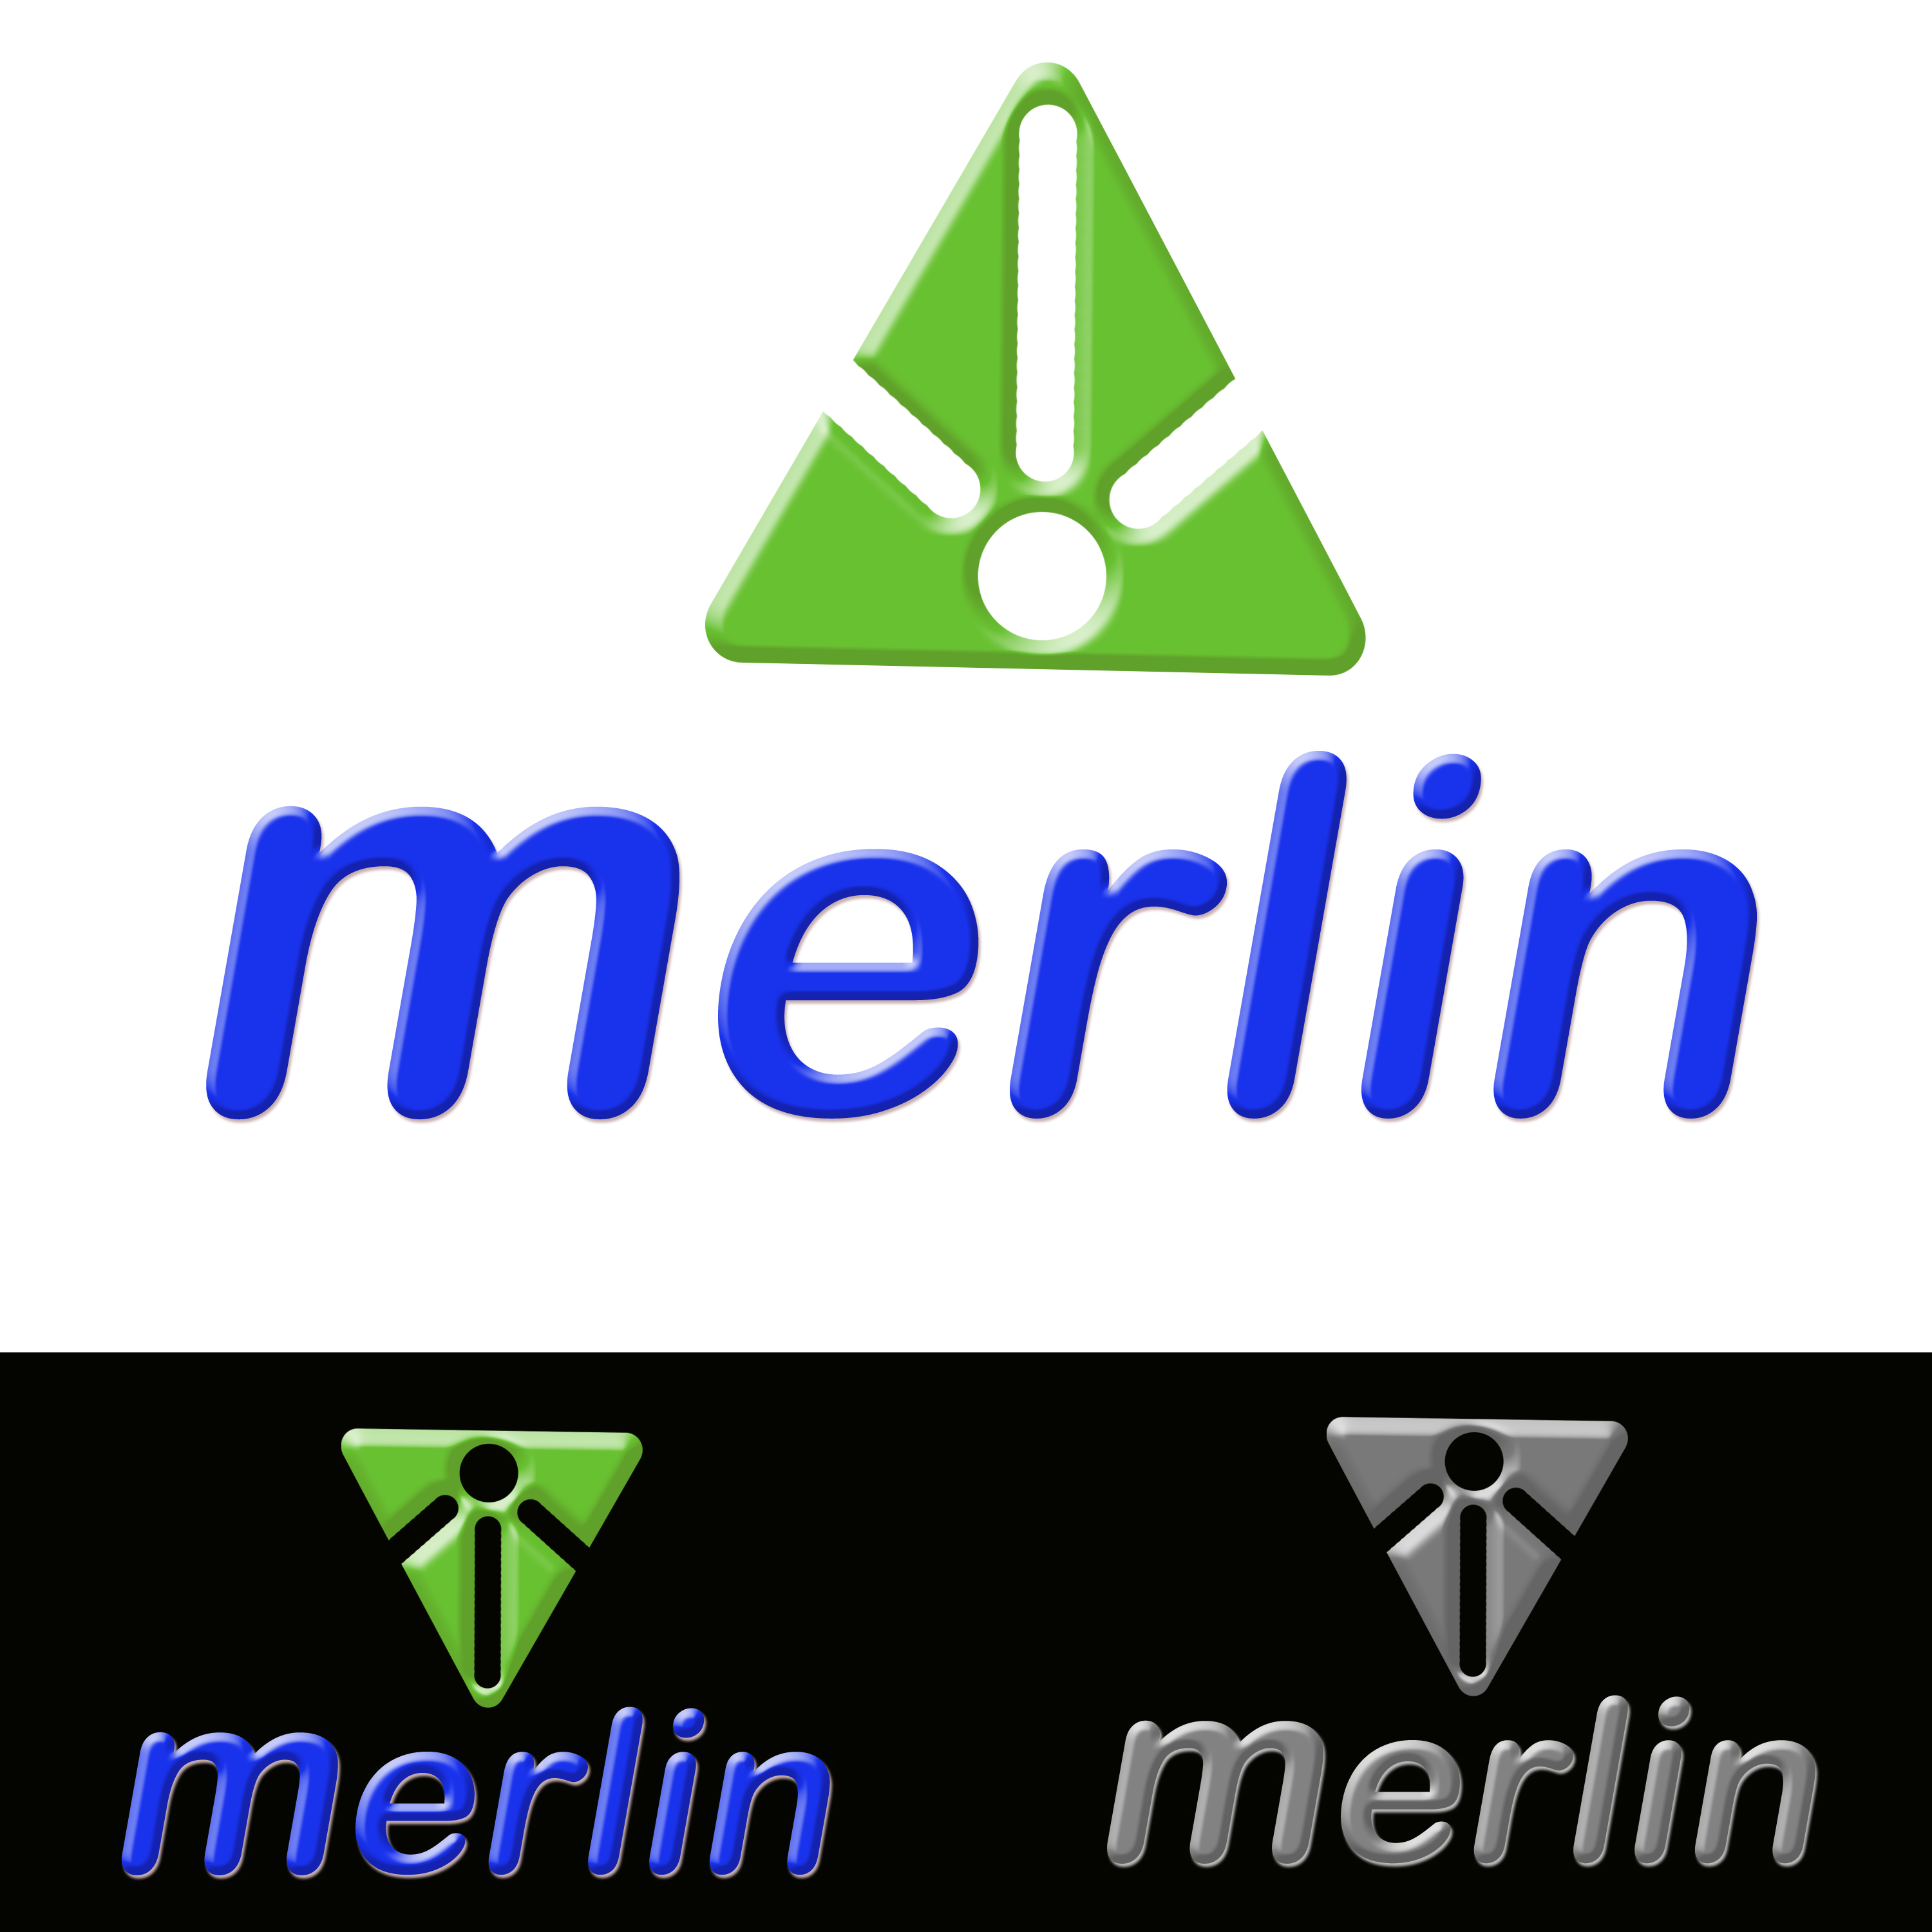 Logo Design by Roberto Sibbaluca - Entry No. 29 in the Logo Design Contest Imaginative Logo Design for Merlin.